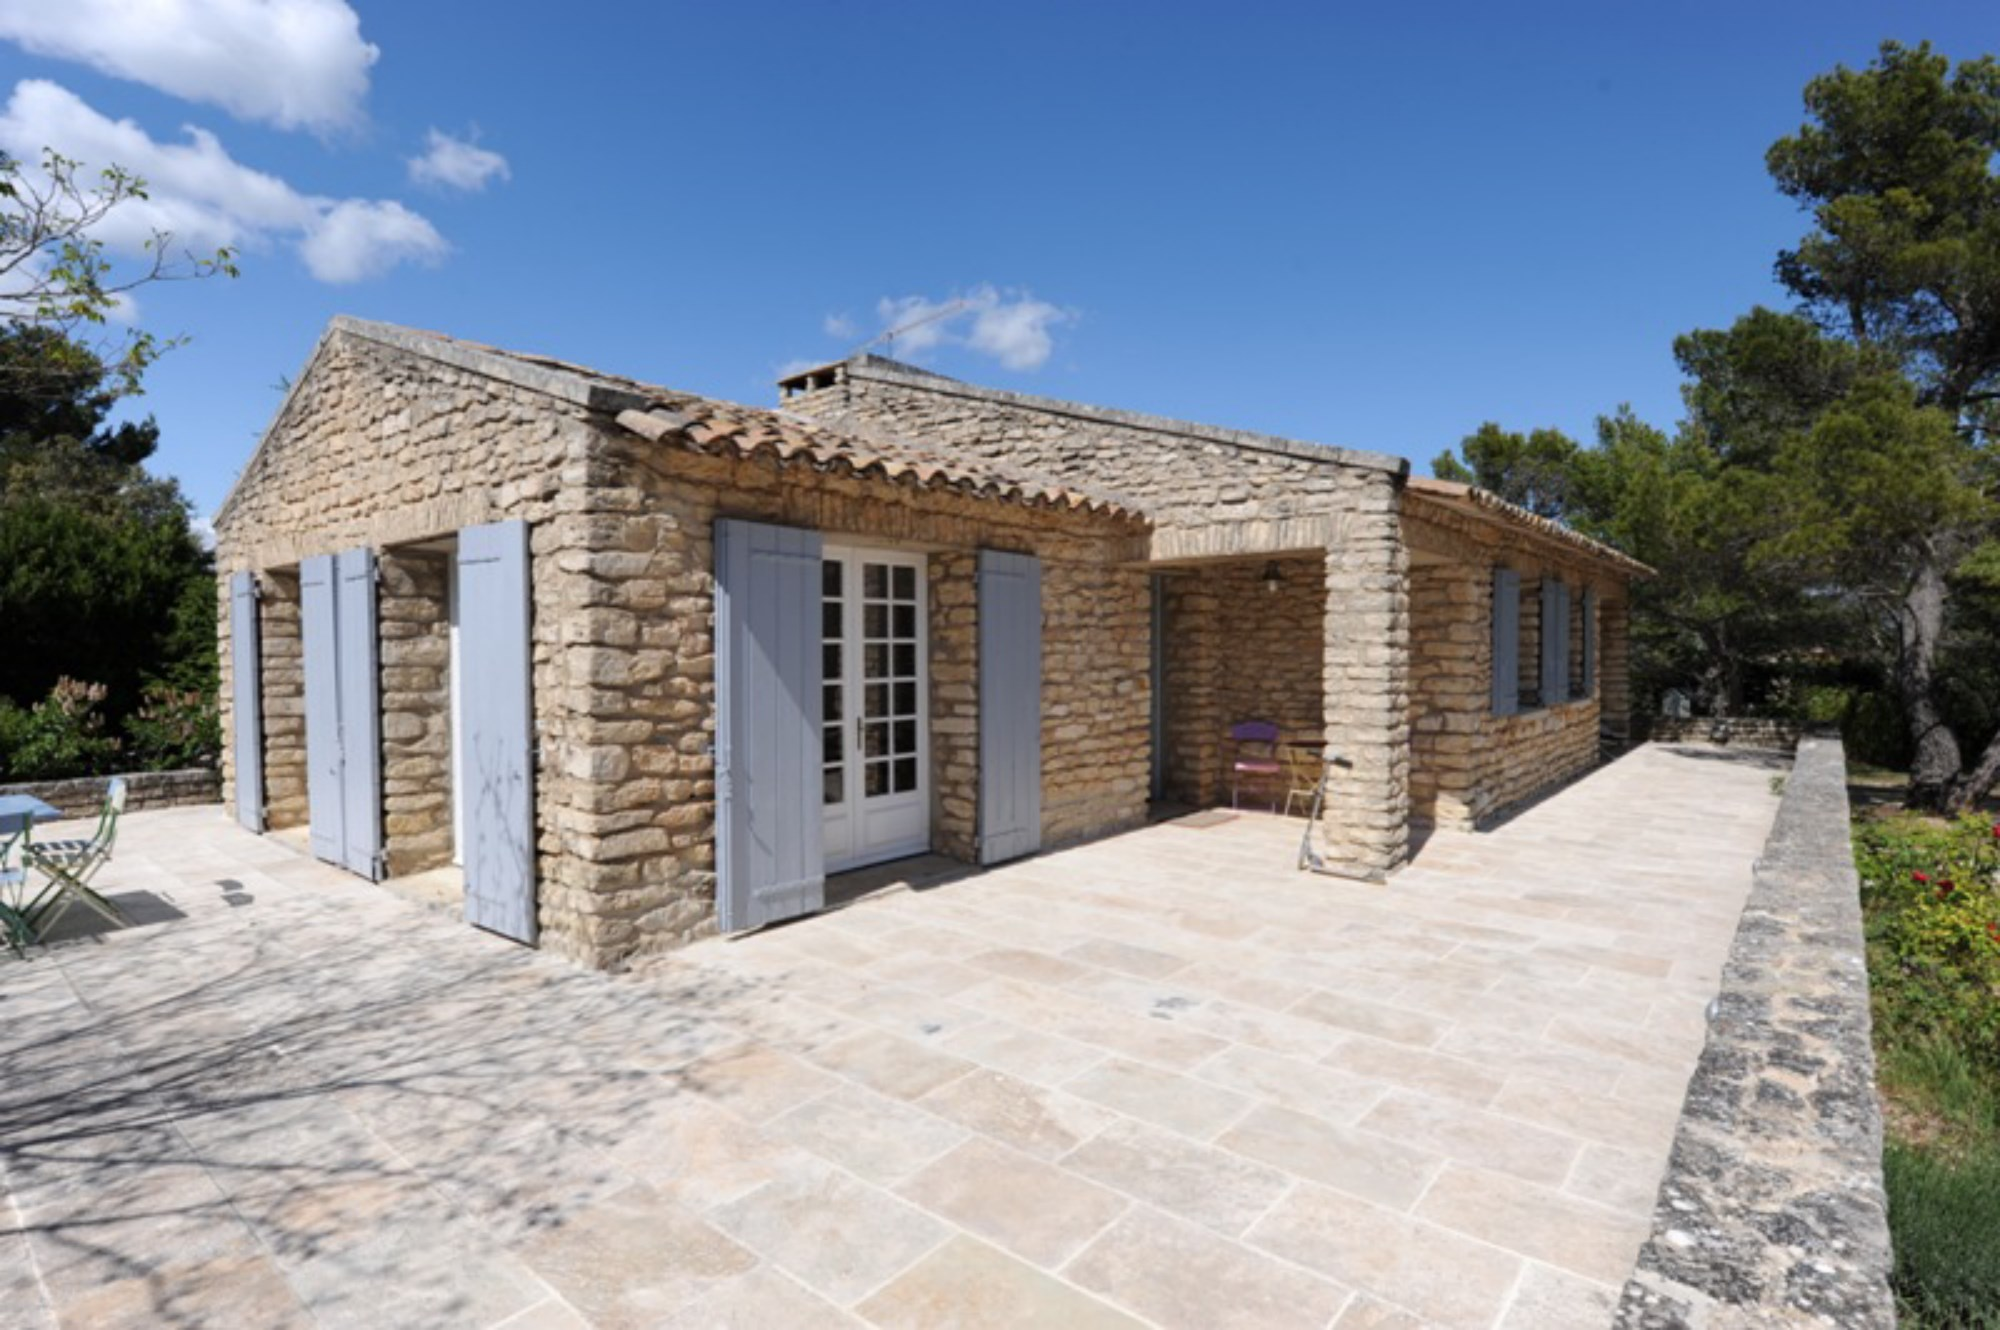 Ventes en luberon vendre belle maison traditionnelle for Maison traditionnelle